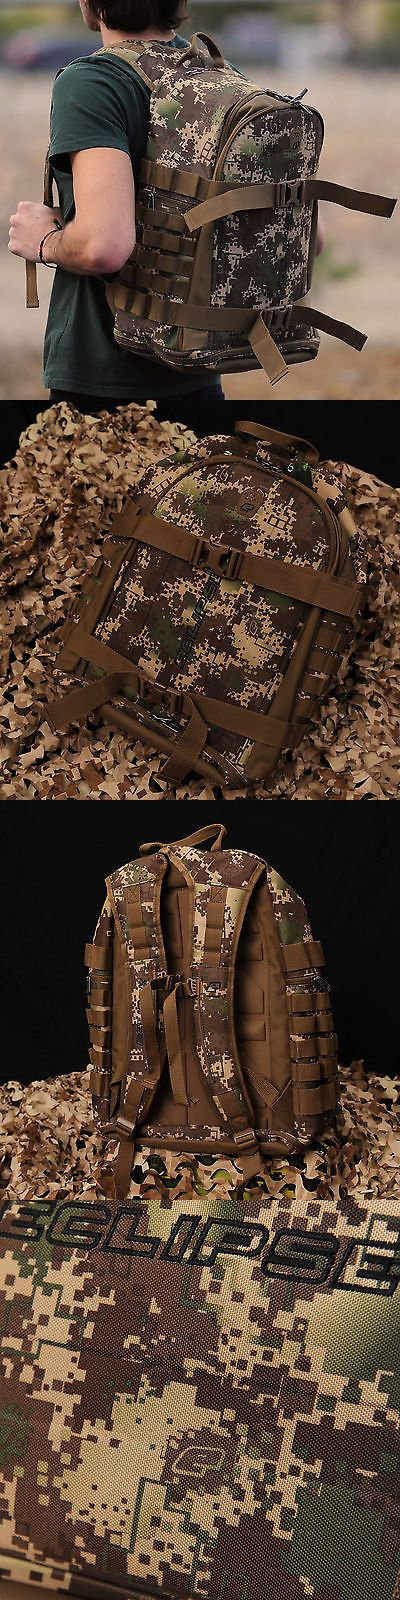 Equipment Bags and Cases 64672: New Planet Eclipse 2016 Gx Gravel Paintball Backpack Gear Bag - Hde Earth Camo -> BUY IT NOW ONLY: $79.95 on eBay!